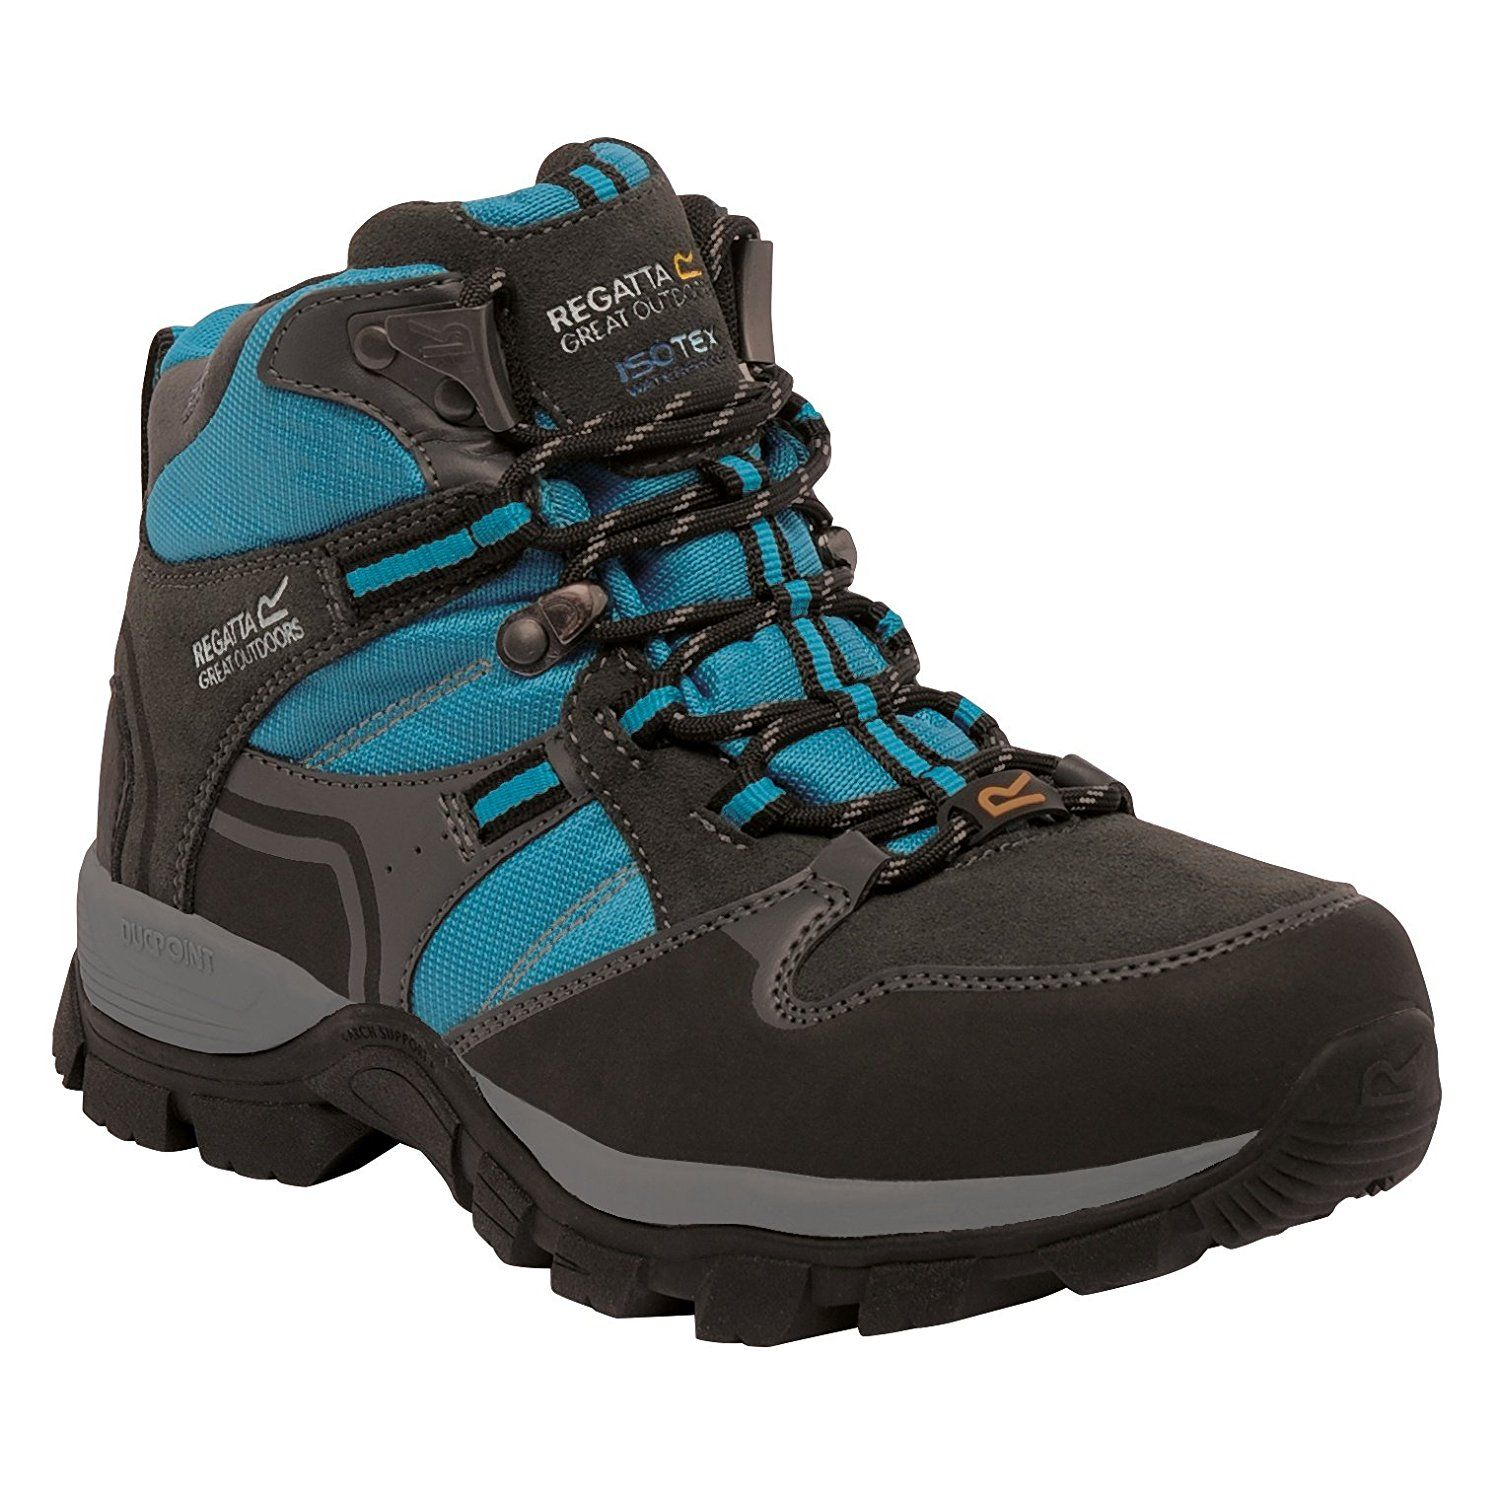 Endurance Frontier Mid Walking Boots